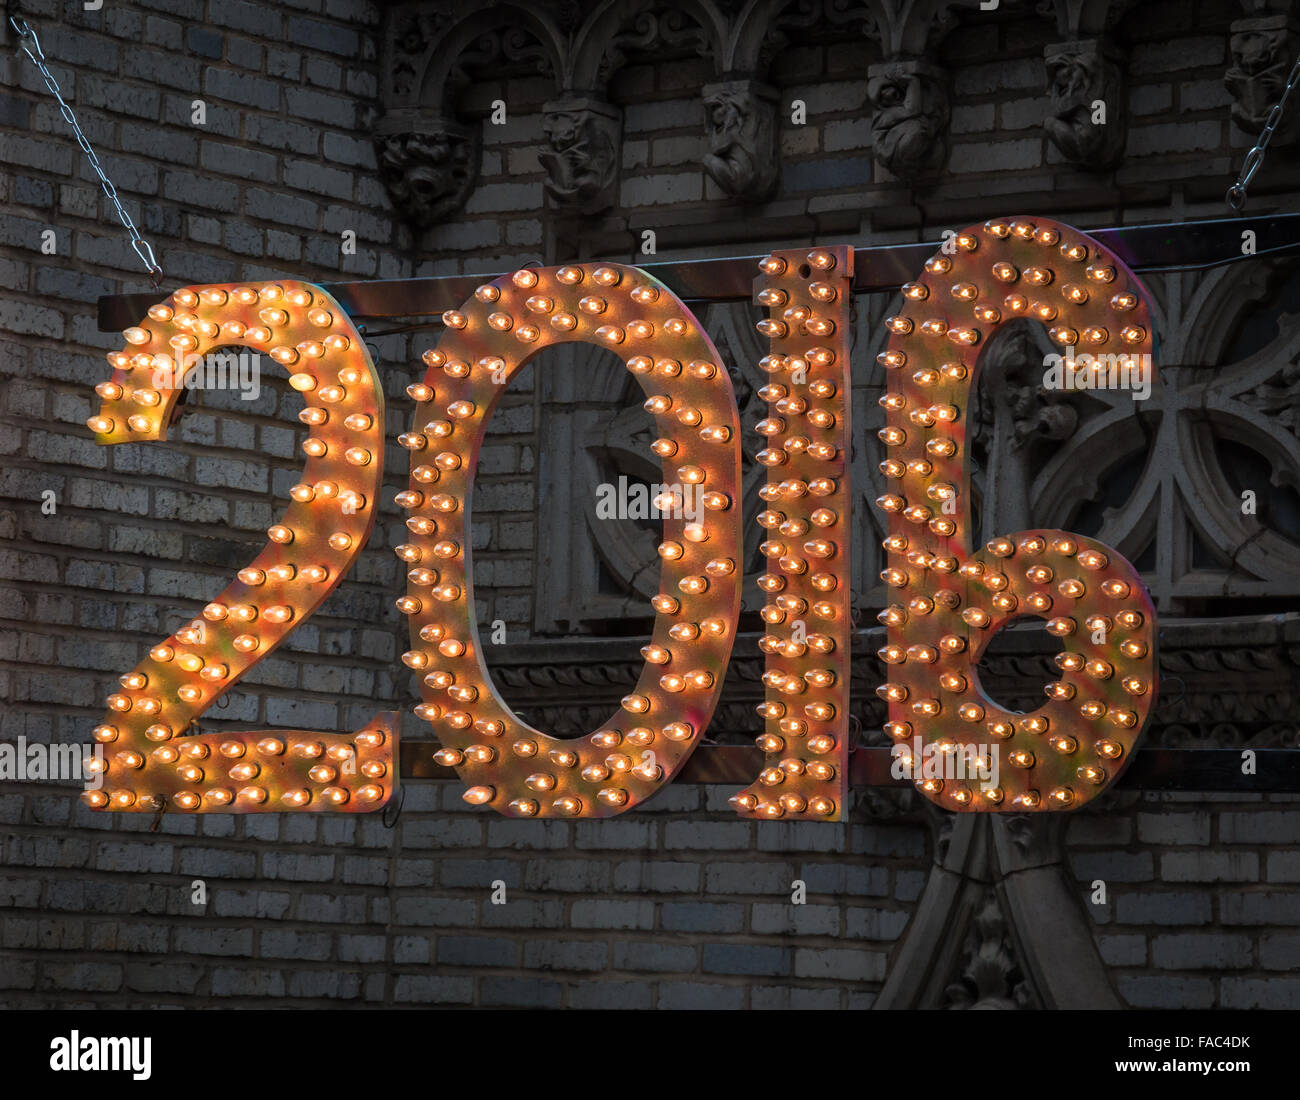 Close-up of hanging lights with the numbers 2016 made of light bulbs Stock Photo